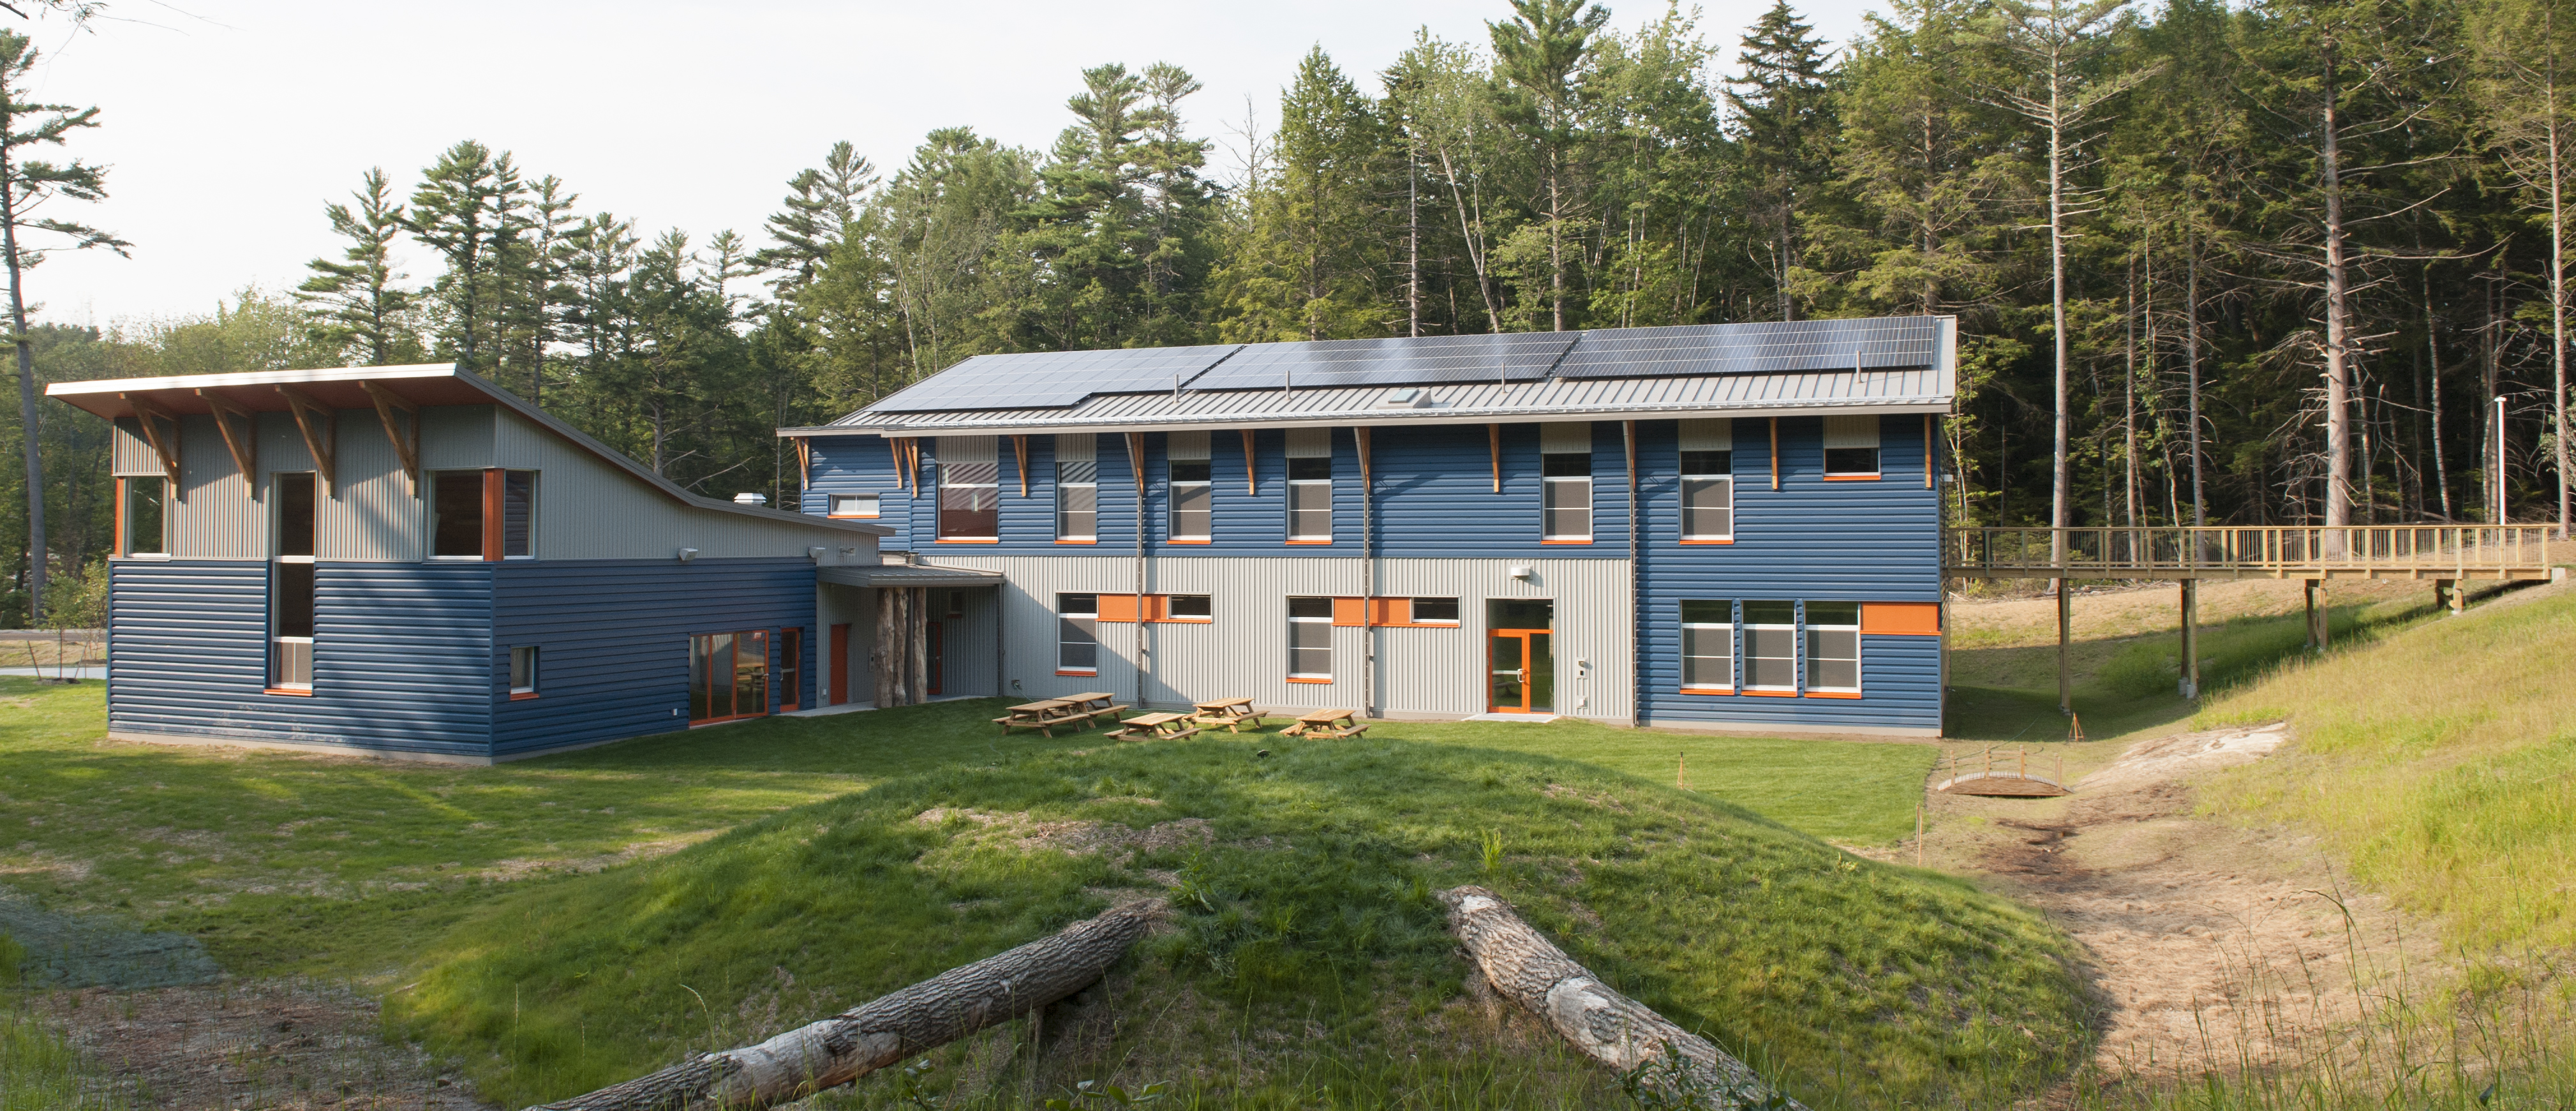 first passive house school in maine is also net zero energy - Net Zero Home Design